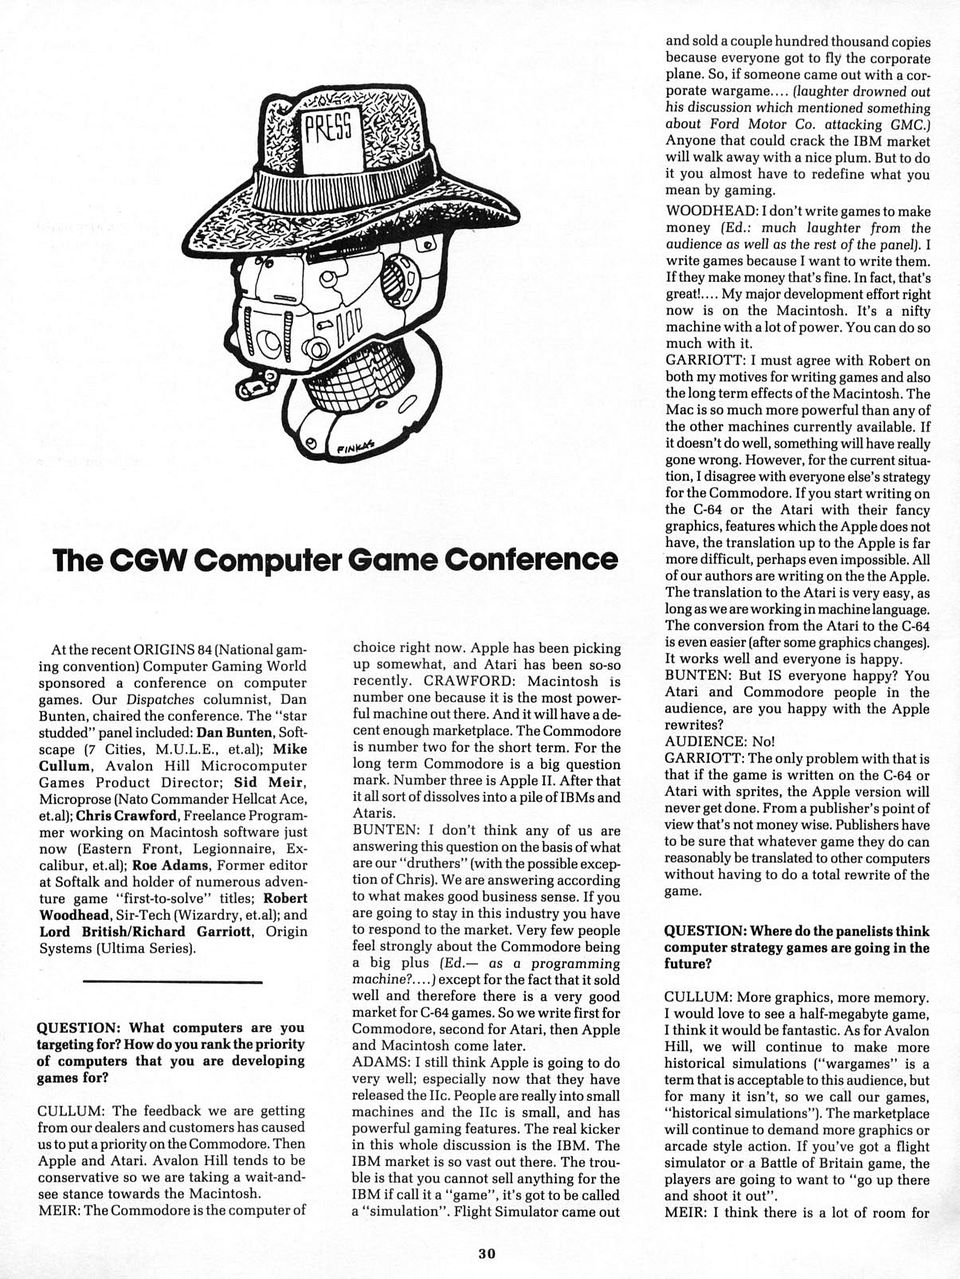 The CGW Computer Game Conference